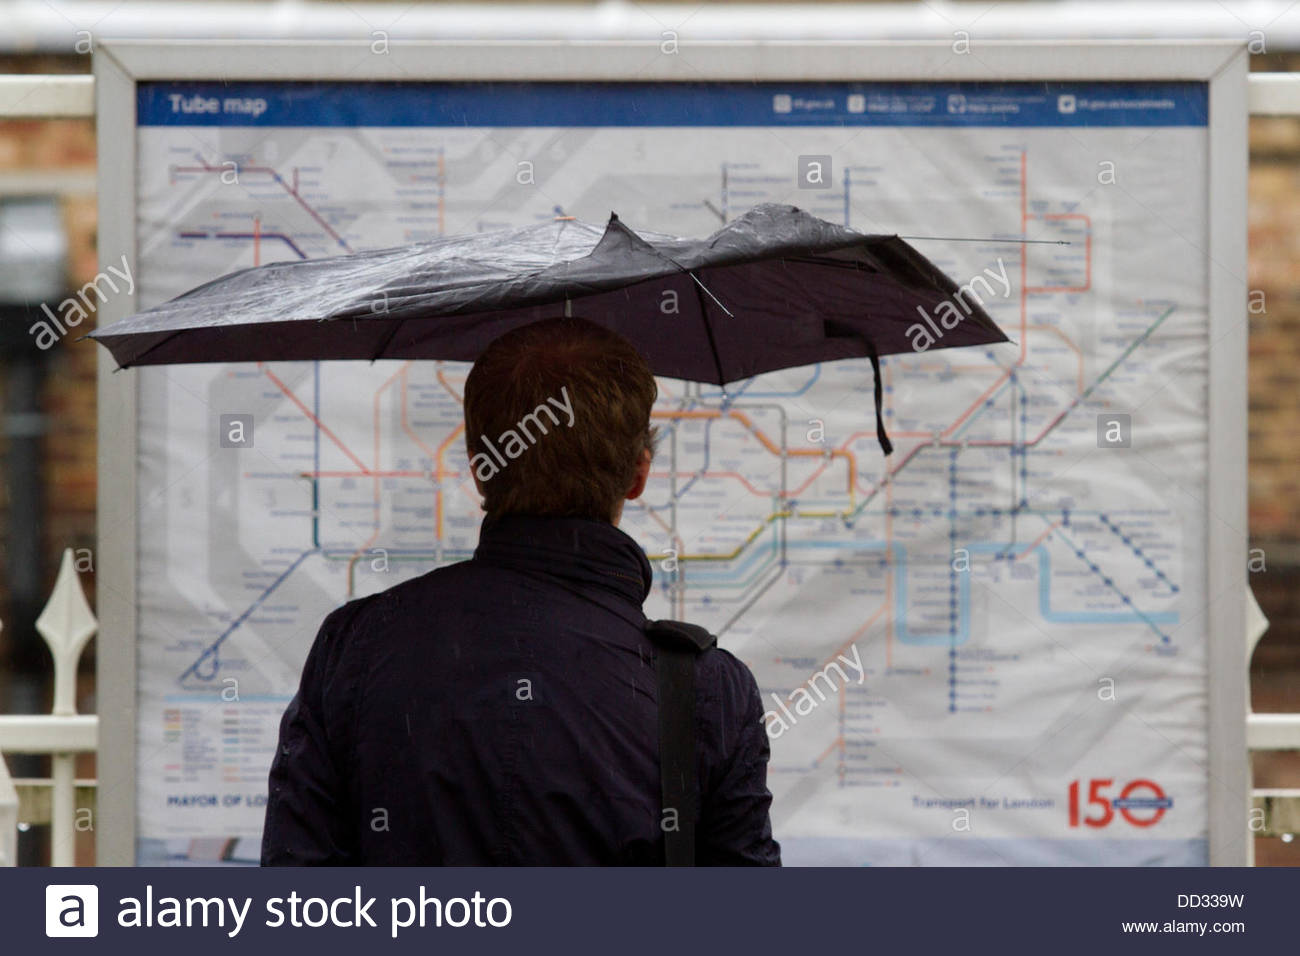 Putney bridge london uk 24th august 2013 a man with an umbrella putney bridge london uk 24th august 2013 a man with an umbrella looks at an underground map with rain predicted over the bank holiday weekend which may gumiabroncs Choice Image